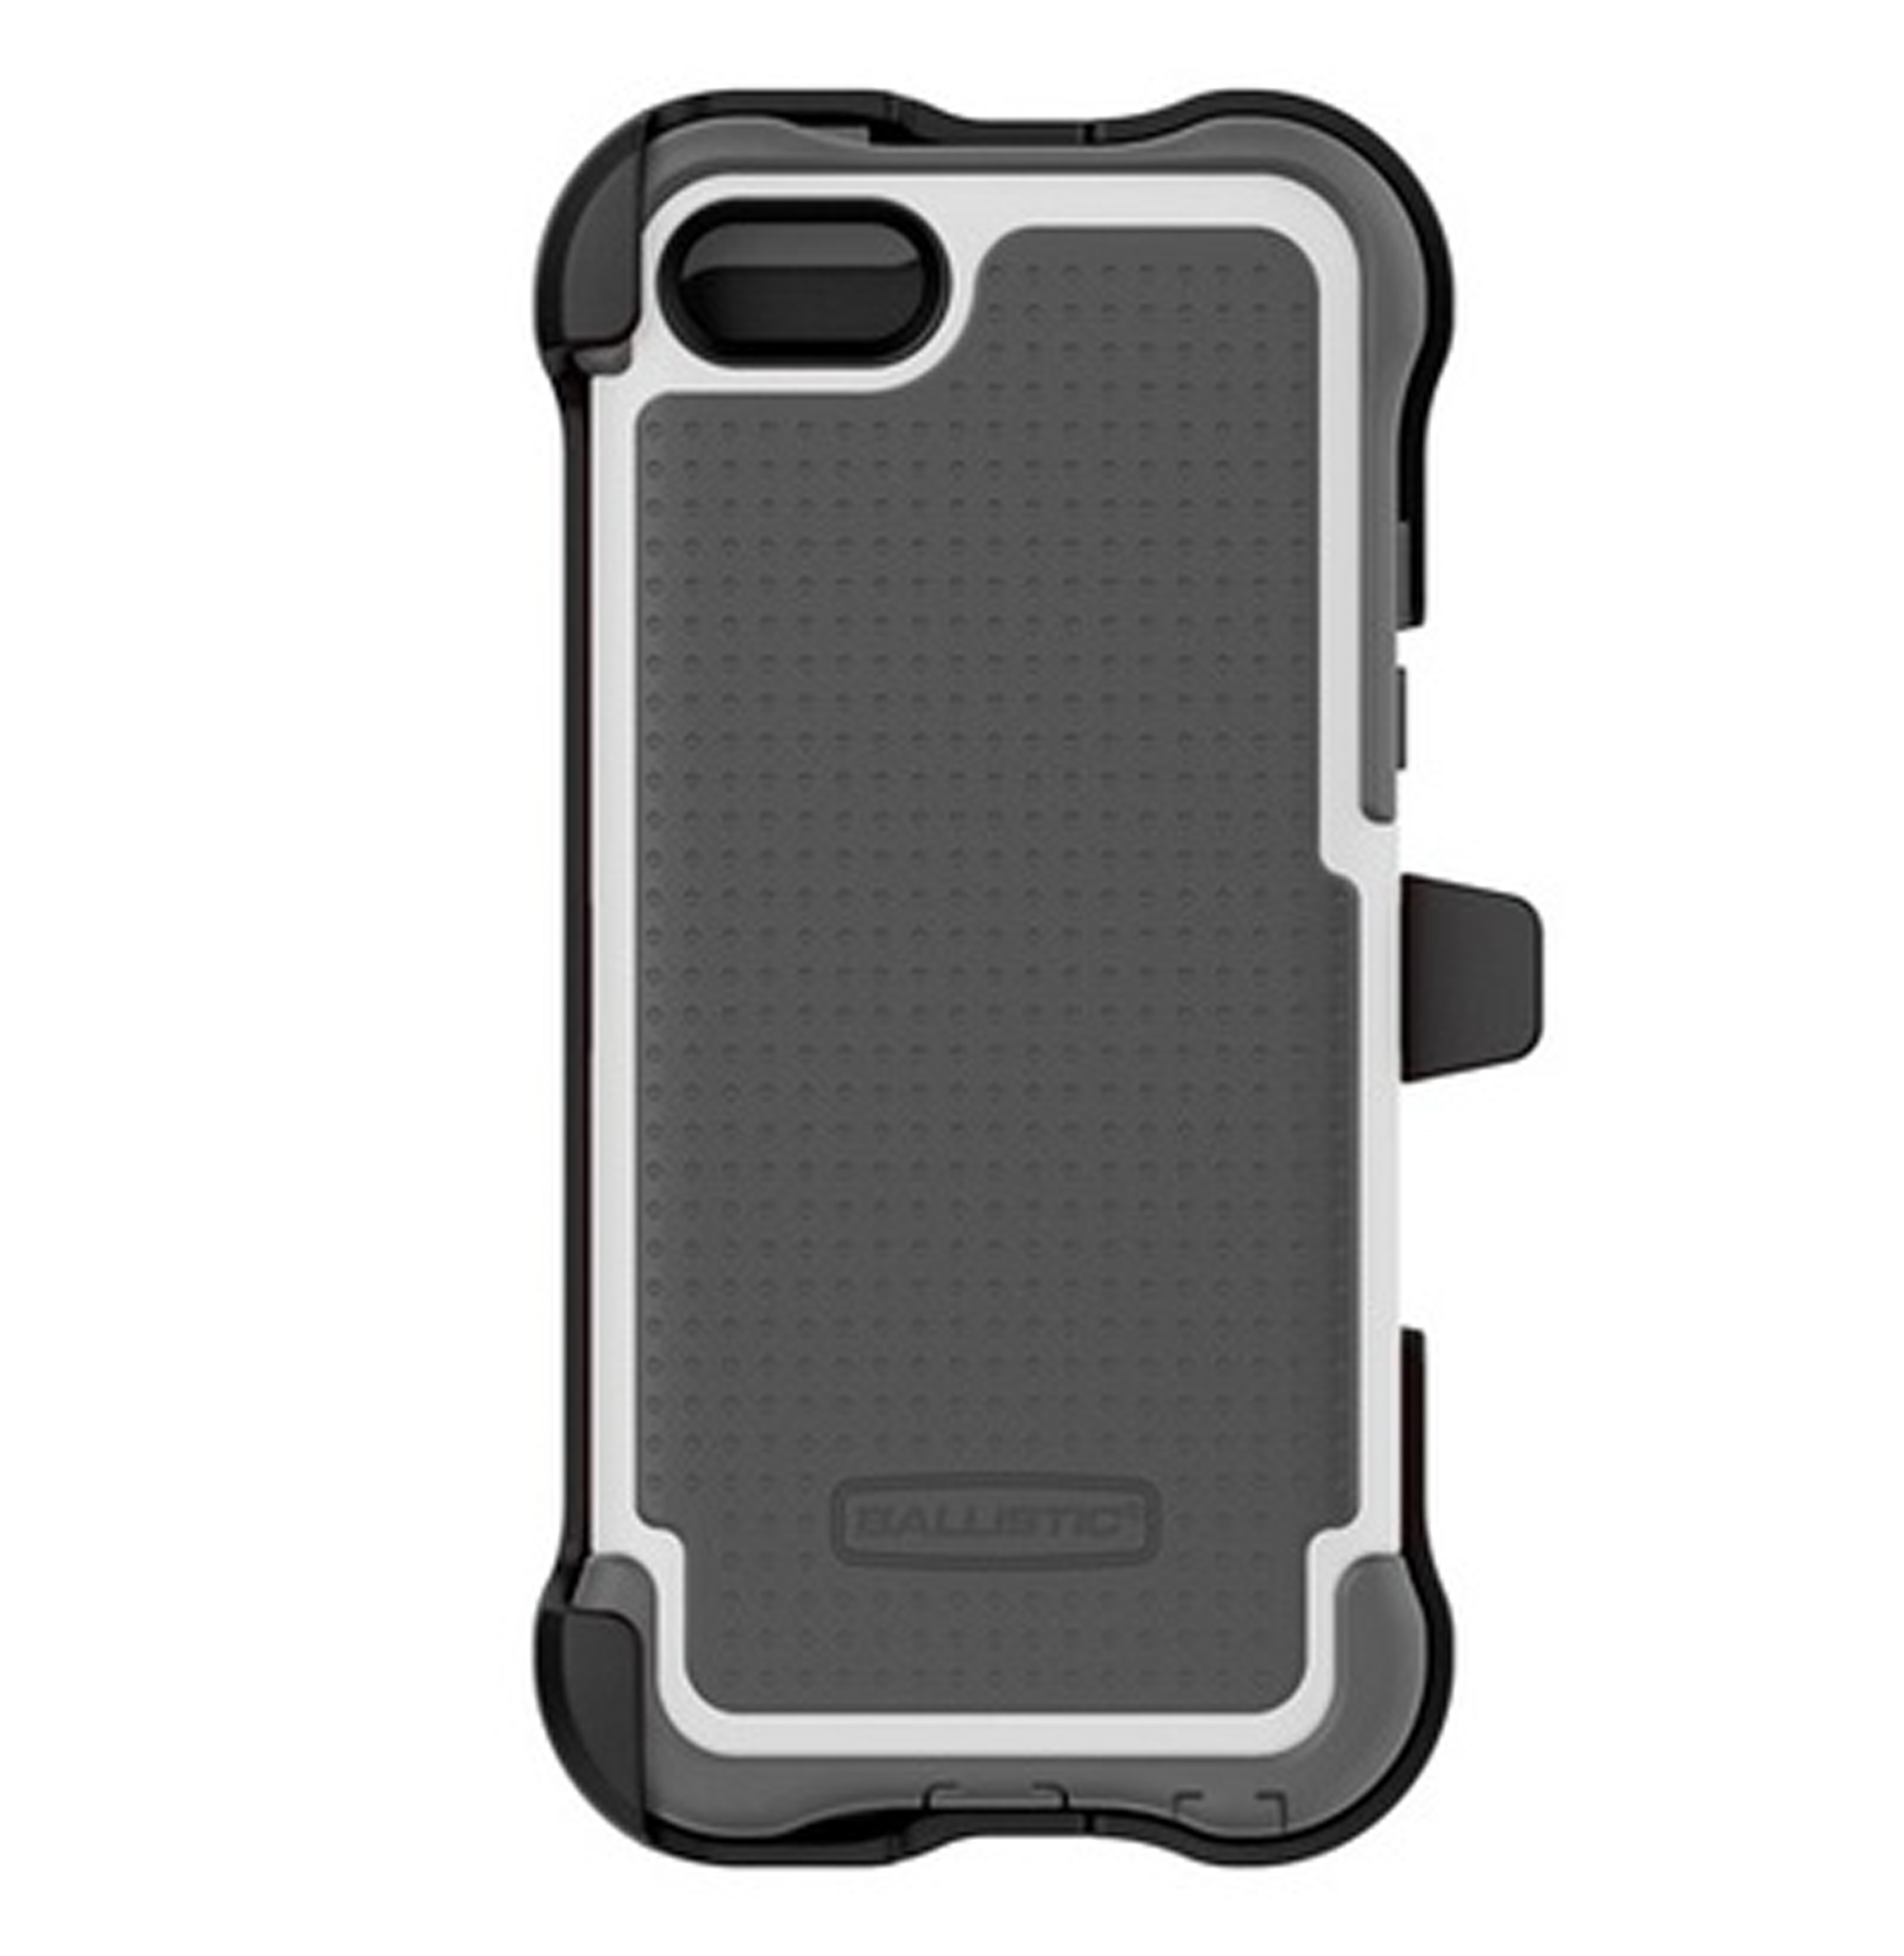 Ballistic SX1149-A135 MAXX Case with Holster for Apple iPhone 5C - Gray/White